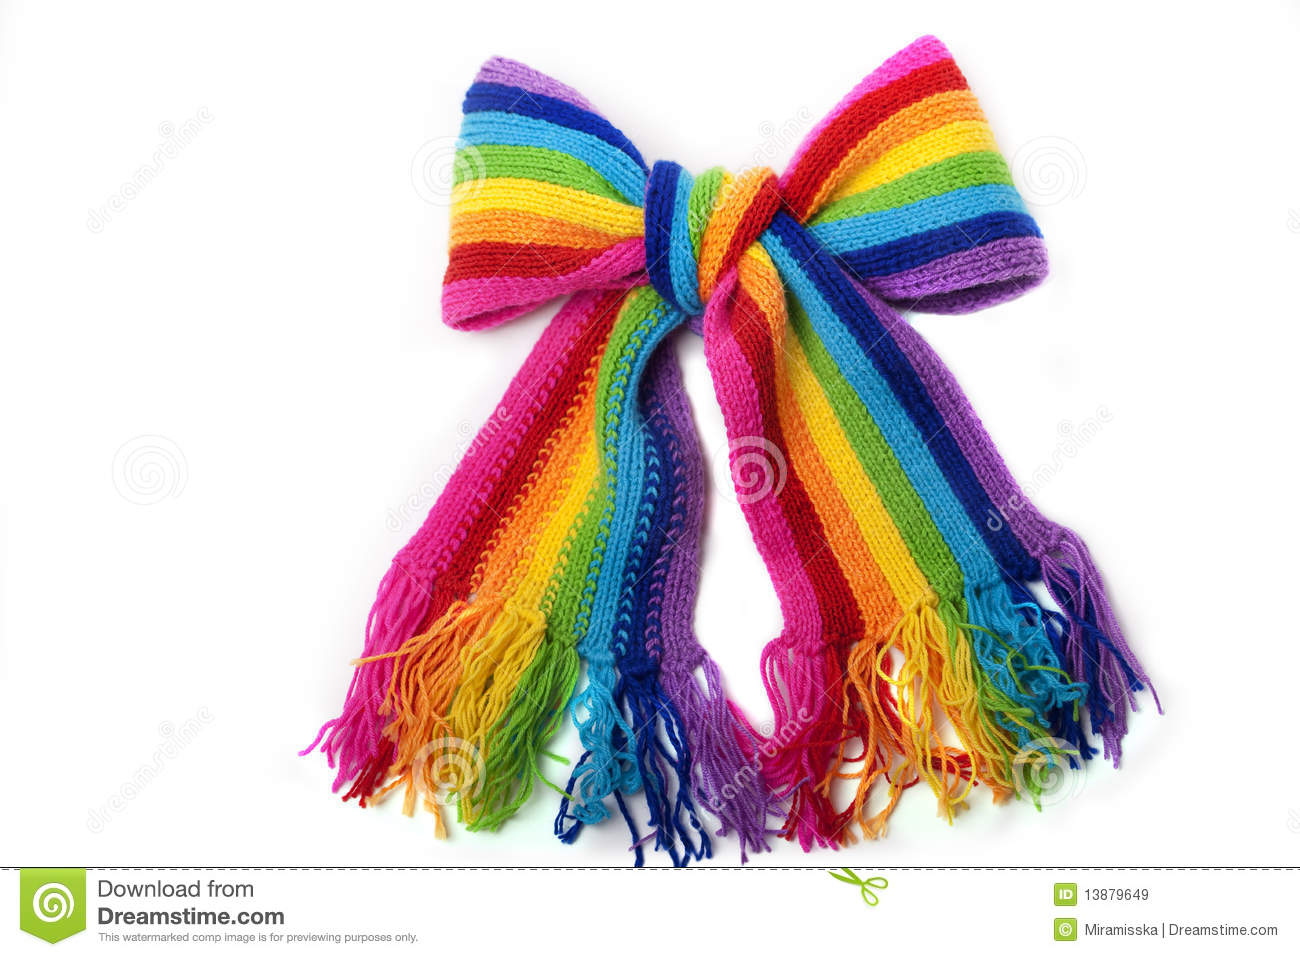 Knitting Pattern For Rainbow Scarf : Bright Rainbow Knitted Scarf Royalty Free Stock Images - Image: 13879649